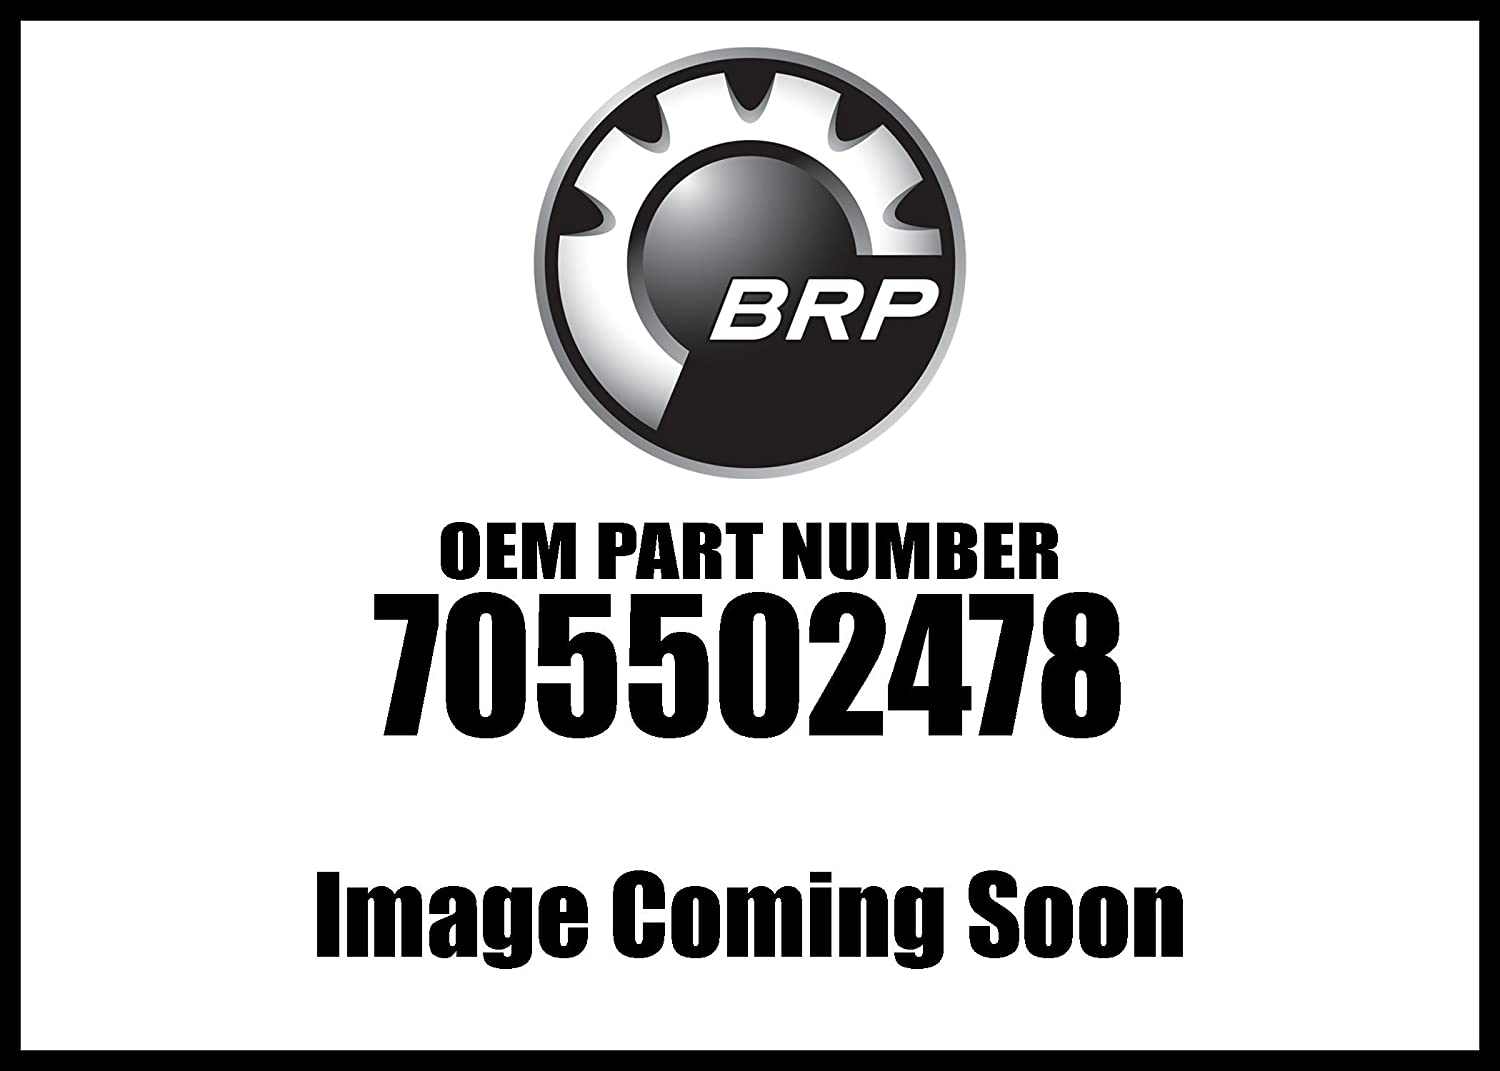 Can-Am 2017-2018 Defender Hd5 Lh Shaft New Oem Limited price 705502478 Half Max 85% OFF